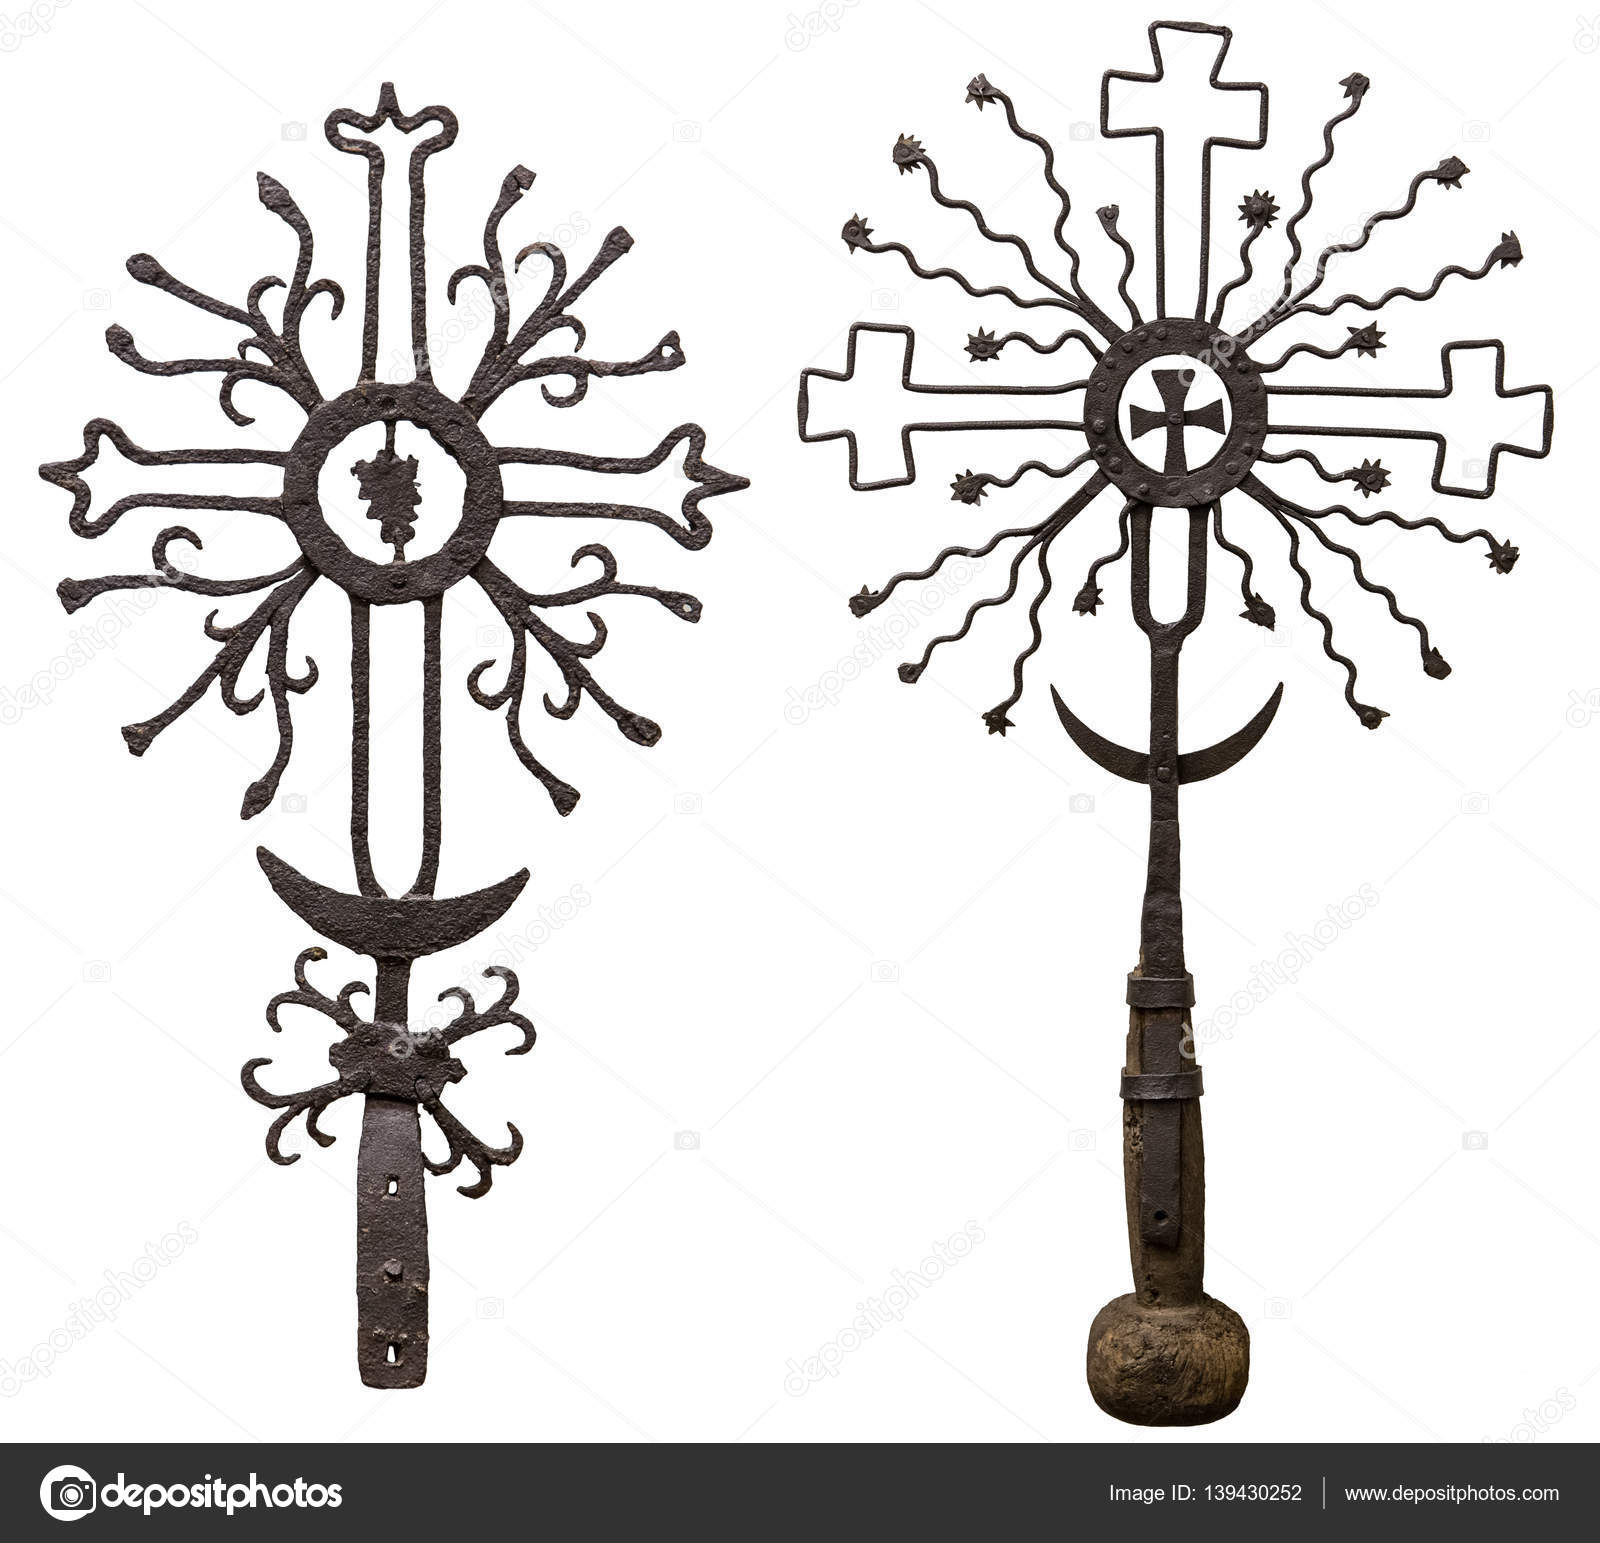 Cruz de metal antiguo aislado en fondo blanco — Foto de stock ...